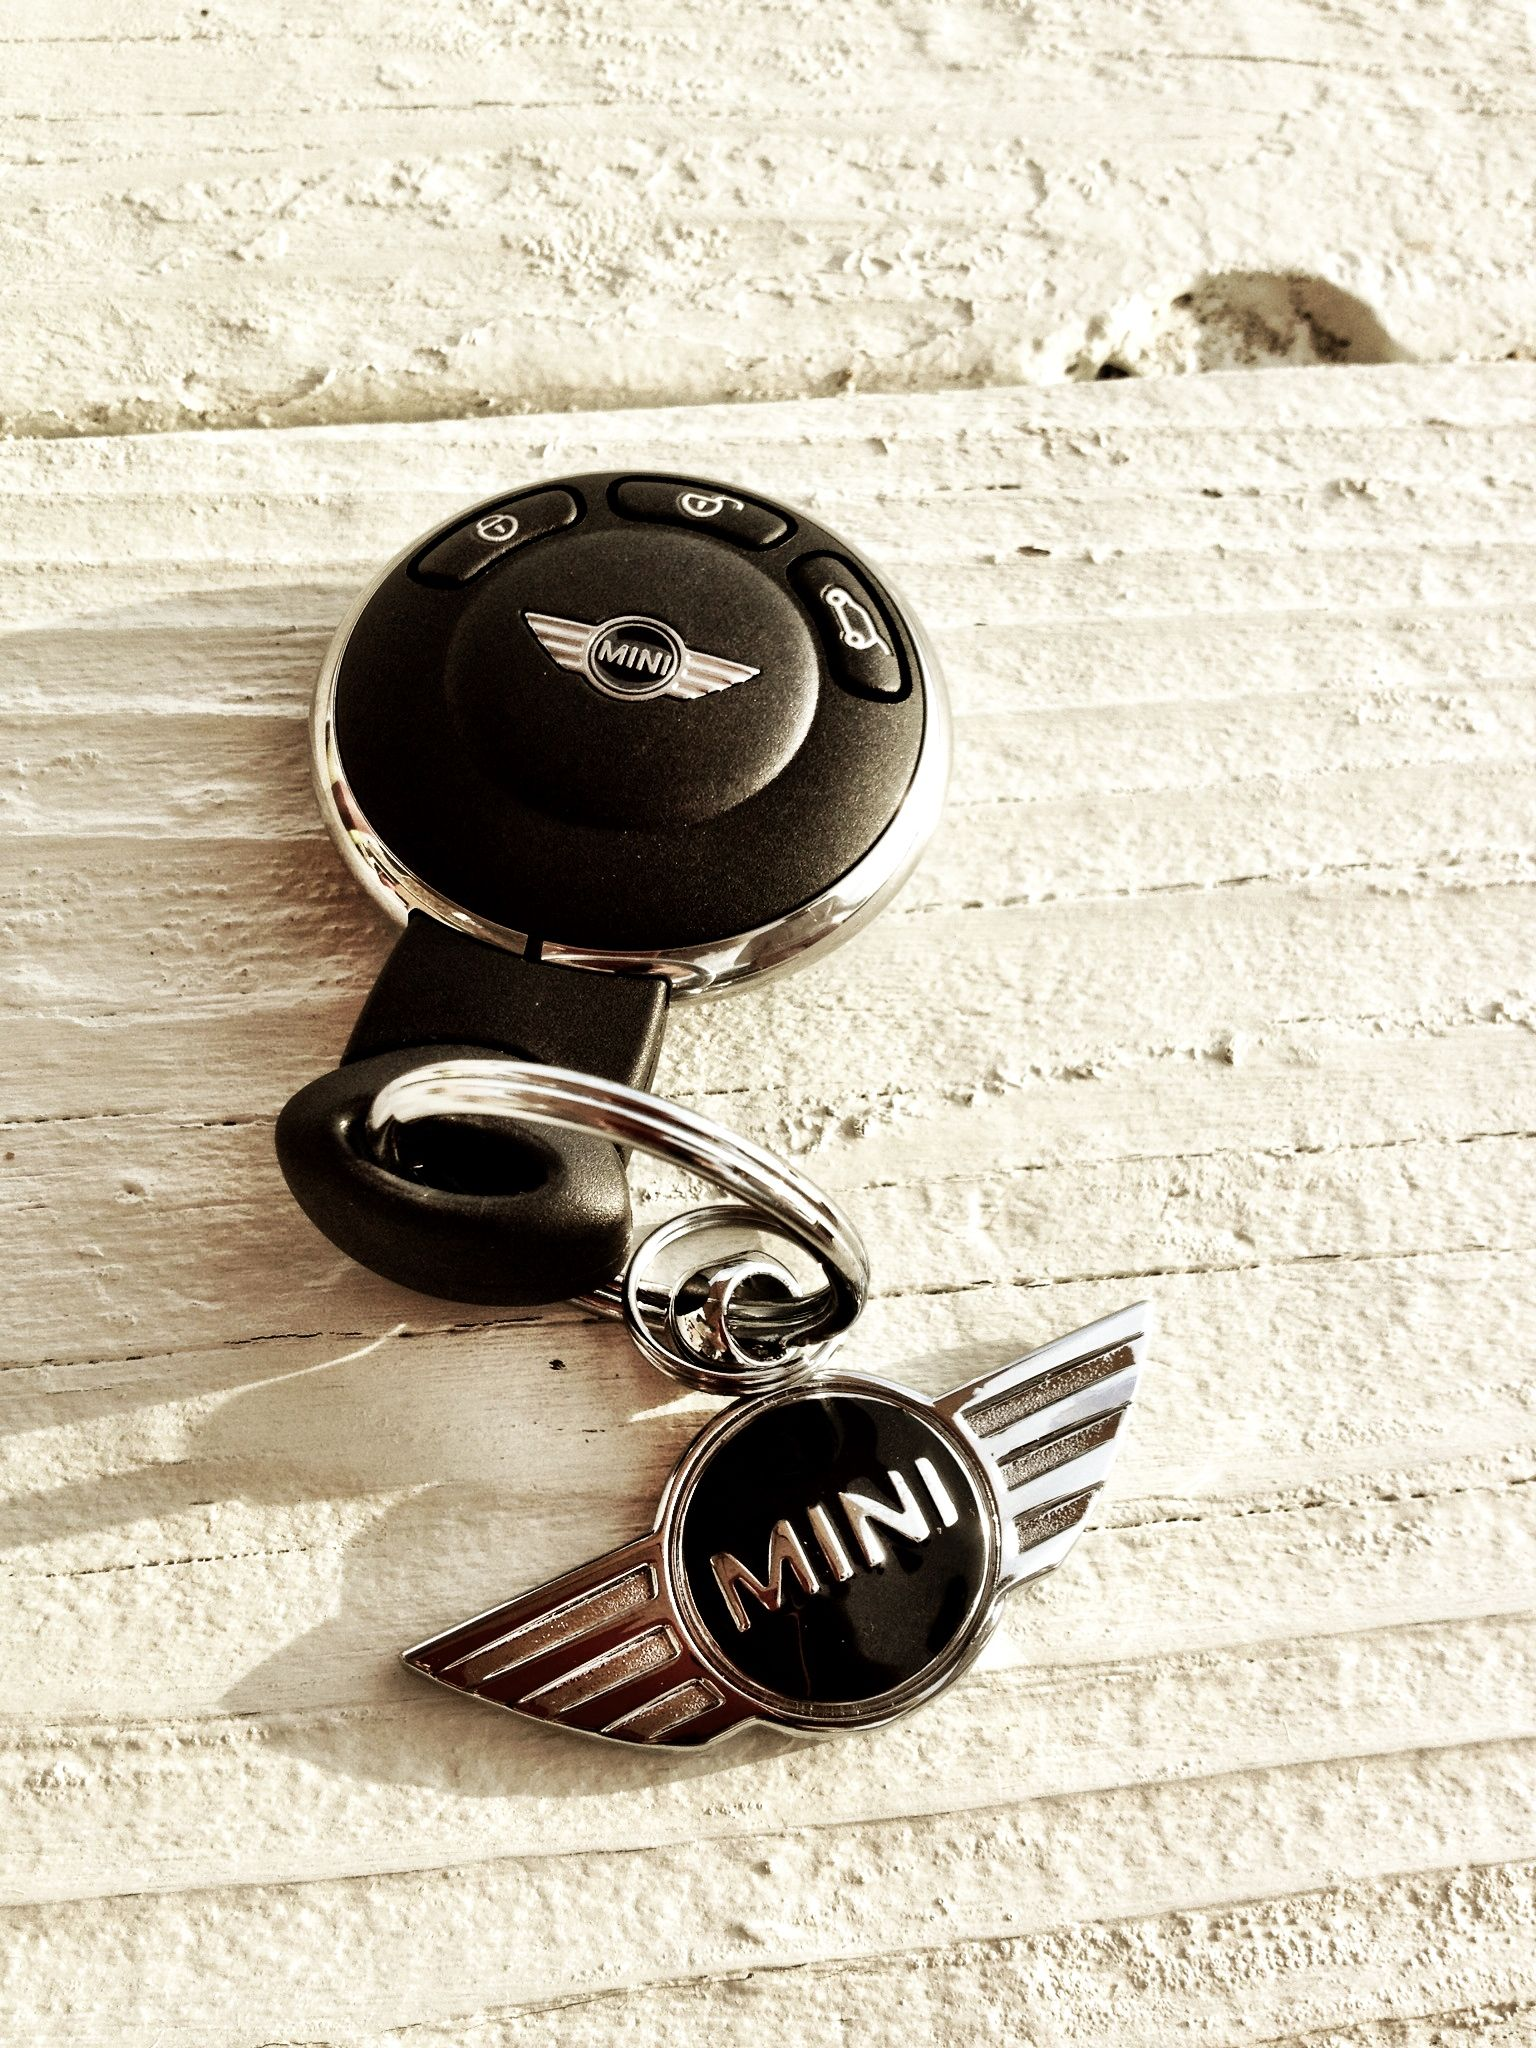 Mini Clubman Key Waiting For The Day I Find It In My Bag 3